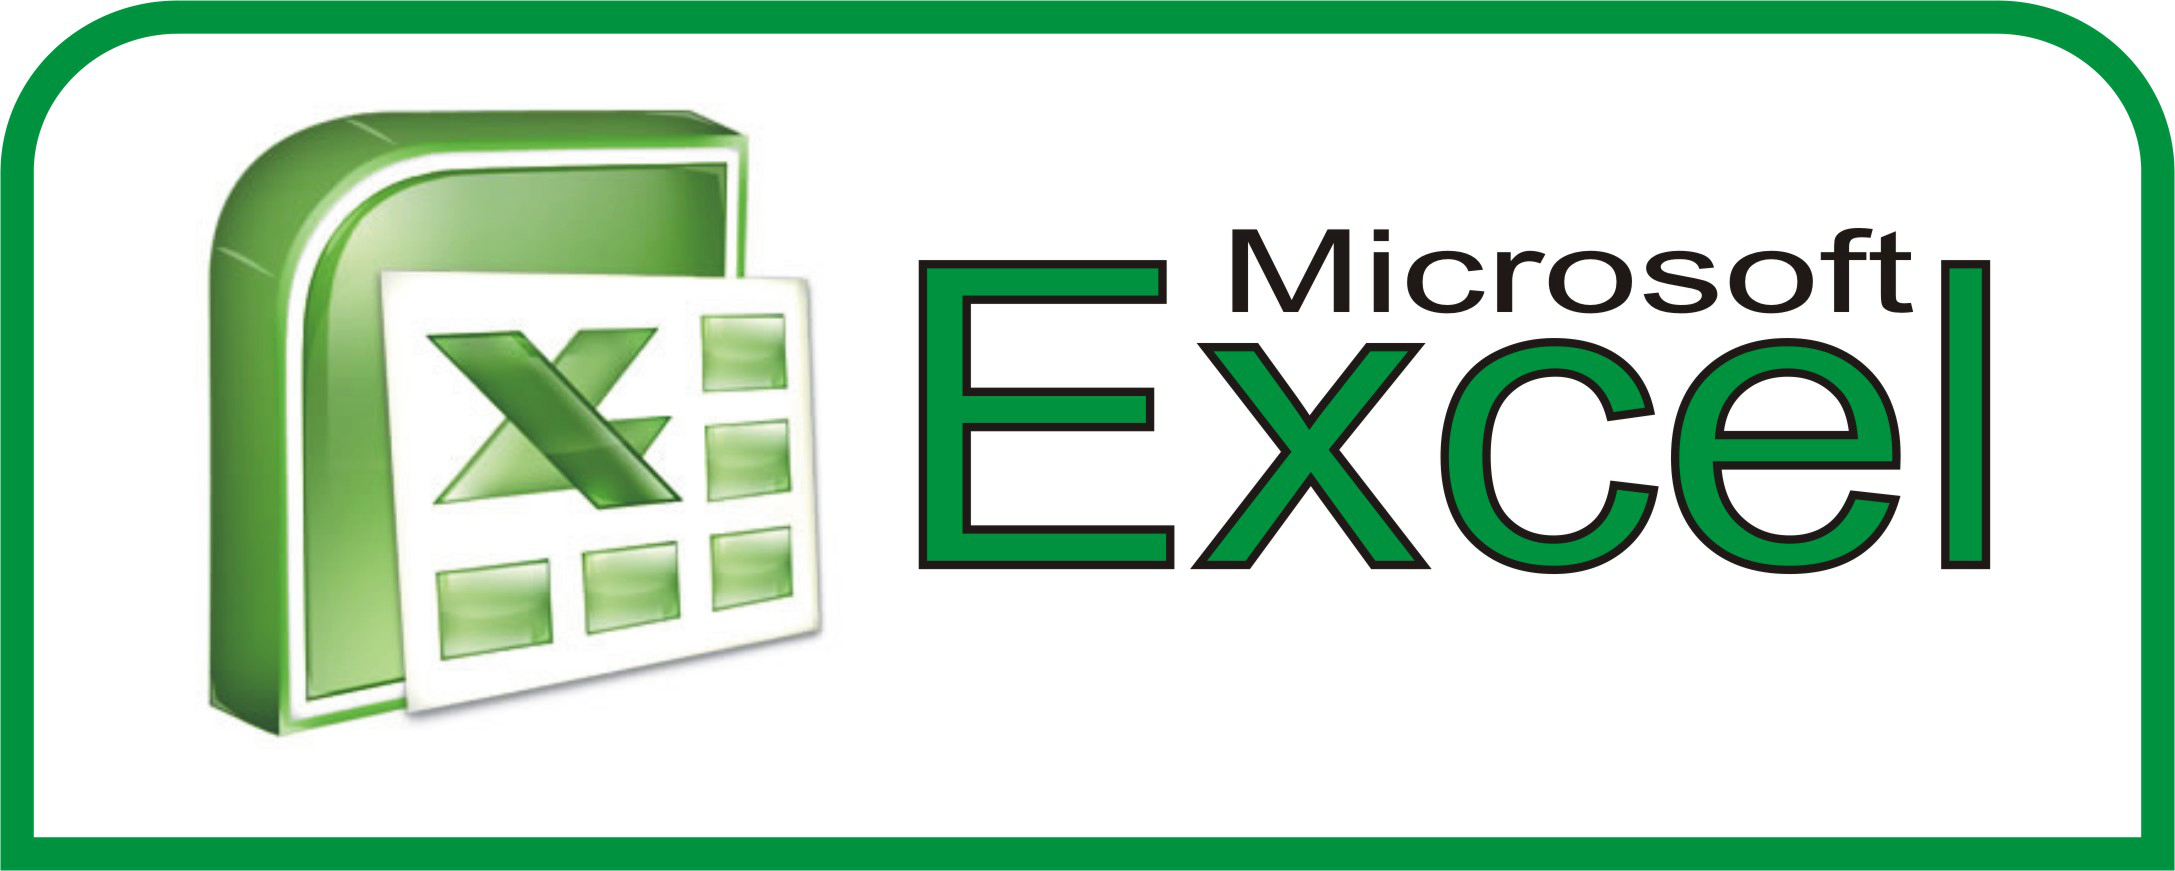 Ediblewildsus  Marvelous  Excel Shortcuts You Probably Didnt Know About  Techdissected With Likable Merge Excel Worksheets Into One Besides Excel Center Friendswood Furthermore Centered Moving Average Excel With Beauteous Excel Dashboard Design Also How To Get Microsoft Excel On Mac In Addition Personal Expense Tracker Excel And Importing Data From Excel To Access As Well As Excel Takasago Rims Additionally Gross Margin Calculator Excel From Techdissectedcom With Ediblewildsus  Likable  Excel Shortcuts You Probably Didnt Know About  Techdissected With Beauteous Merge Excel Worksheets Into One Besides Excel Center Friendswood Furthermore Centered Moving Average Excel And Marvelous Excel Dashboard Design Also How To Get Microsoft Excel On Mac In Addition Personal Expense Tracker Excel From Techdissectedcom